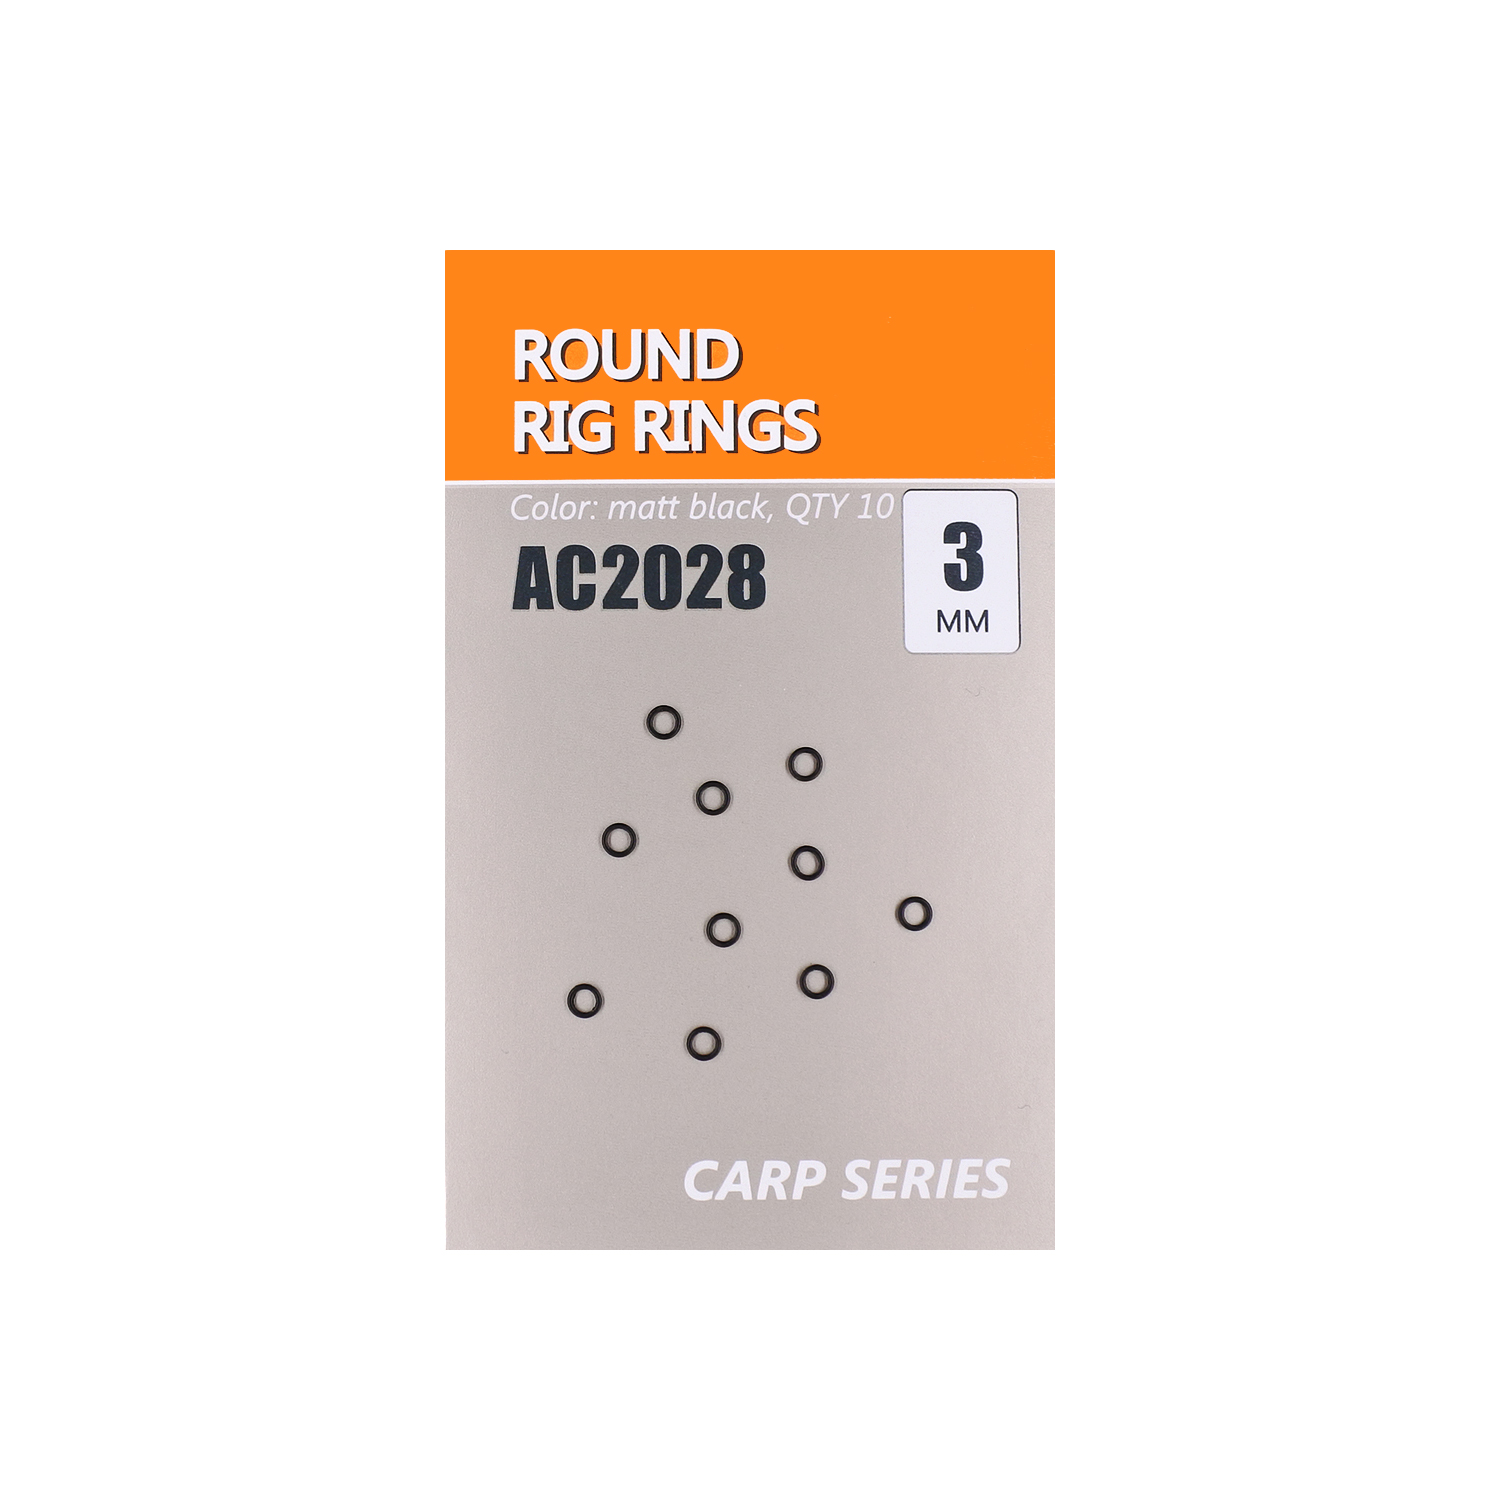 Кольца Orange Carp Round Rig Rings AC2028 d 3,1мм